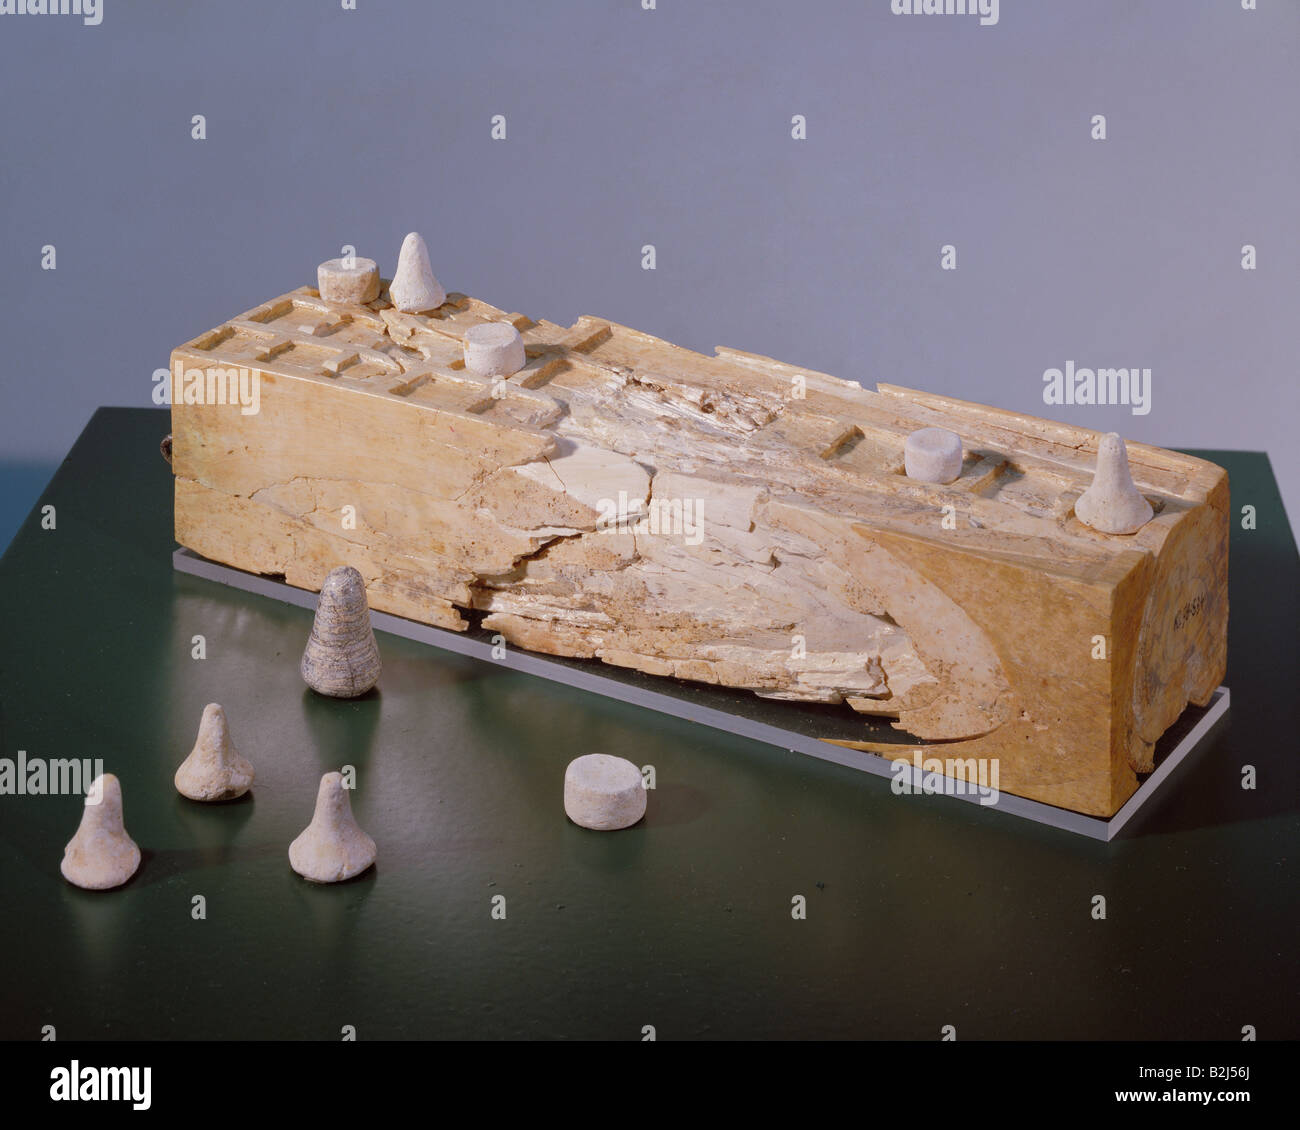 game, game baord, ivory, Phoenicia, Kamed el-Loz, 13ht century BC, National Museum, Beirut, games, game pieces, - Stock Image